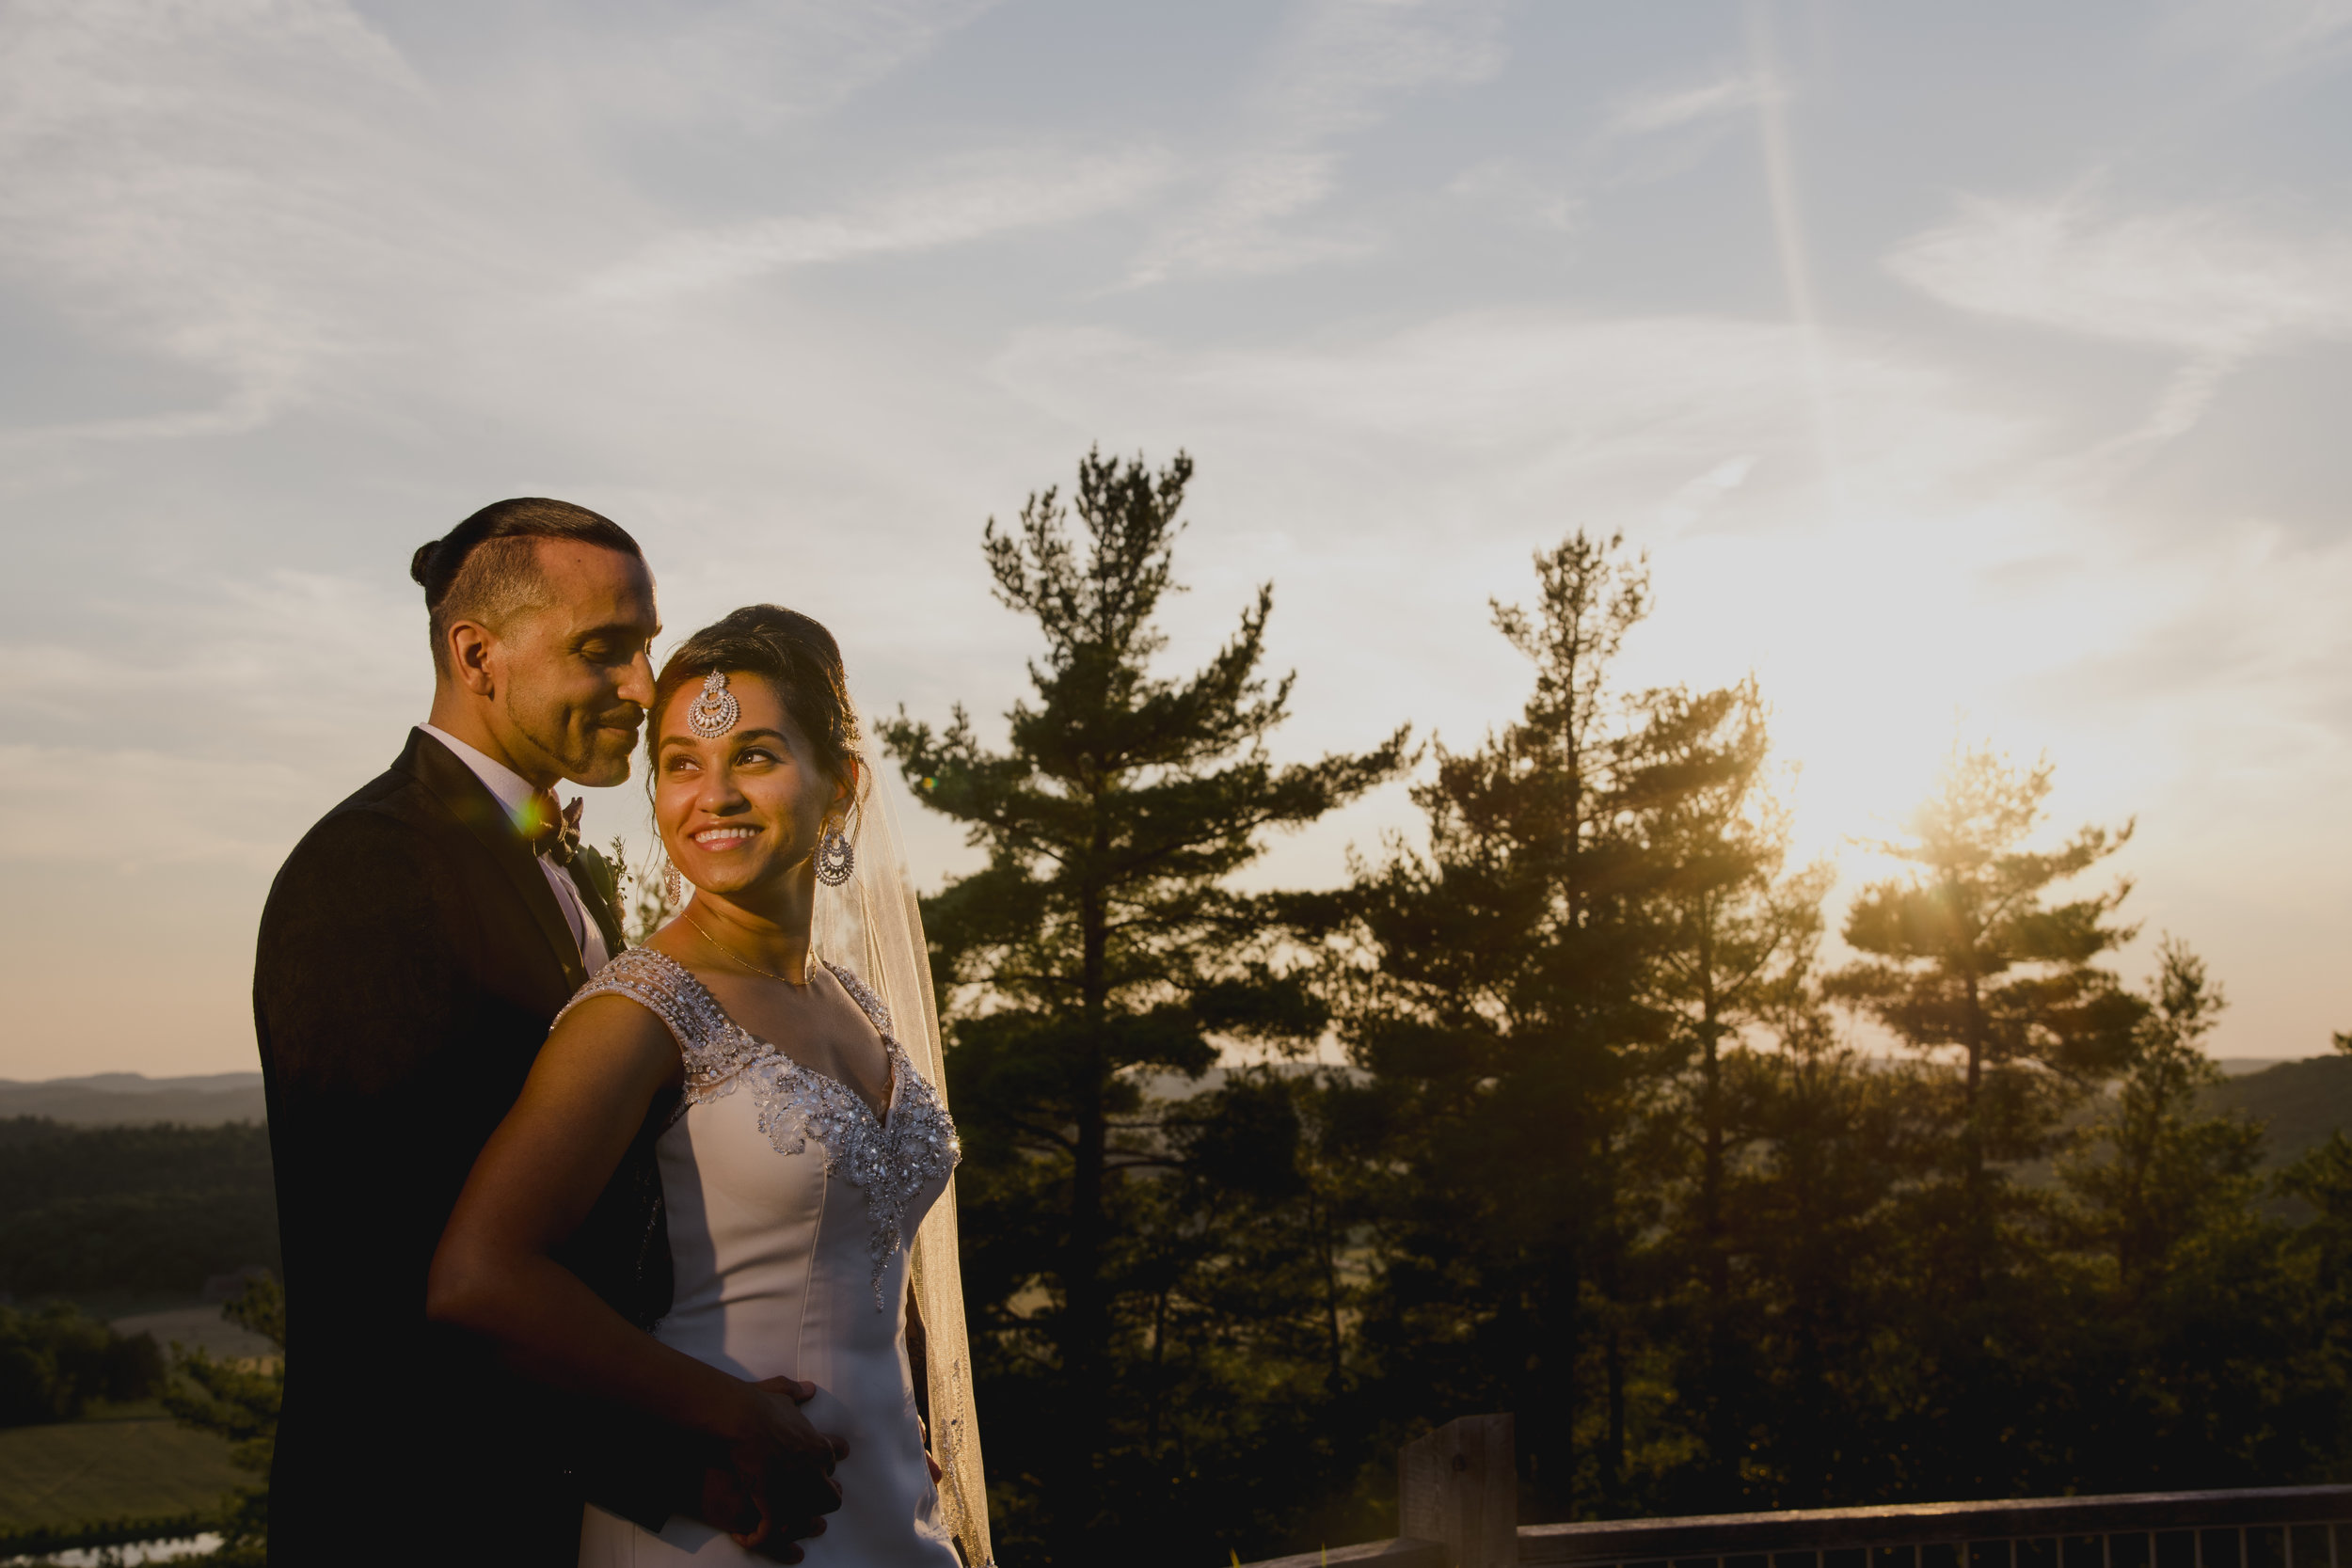 artistic photo of a bride and groom at a le belvedere wedding